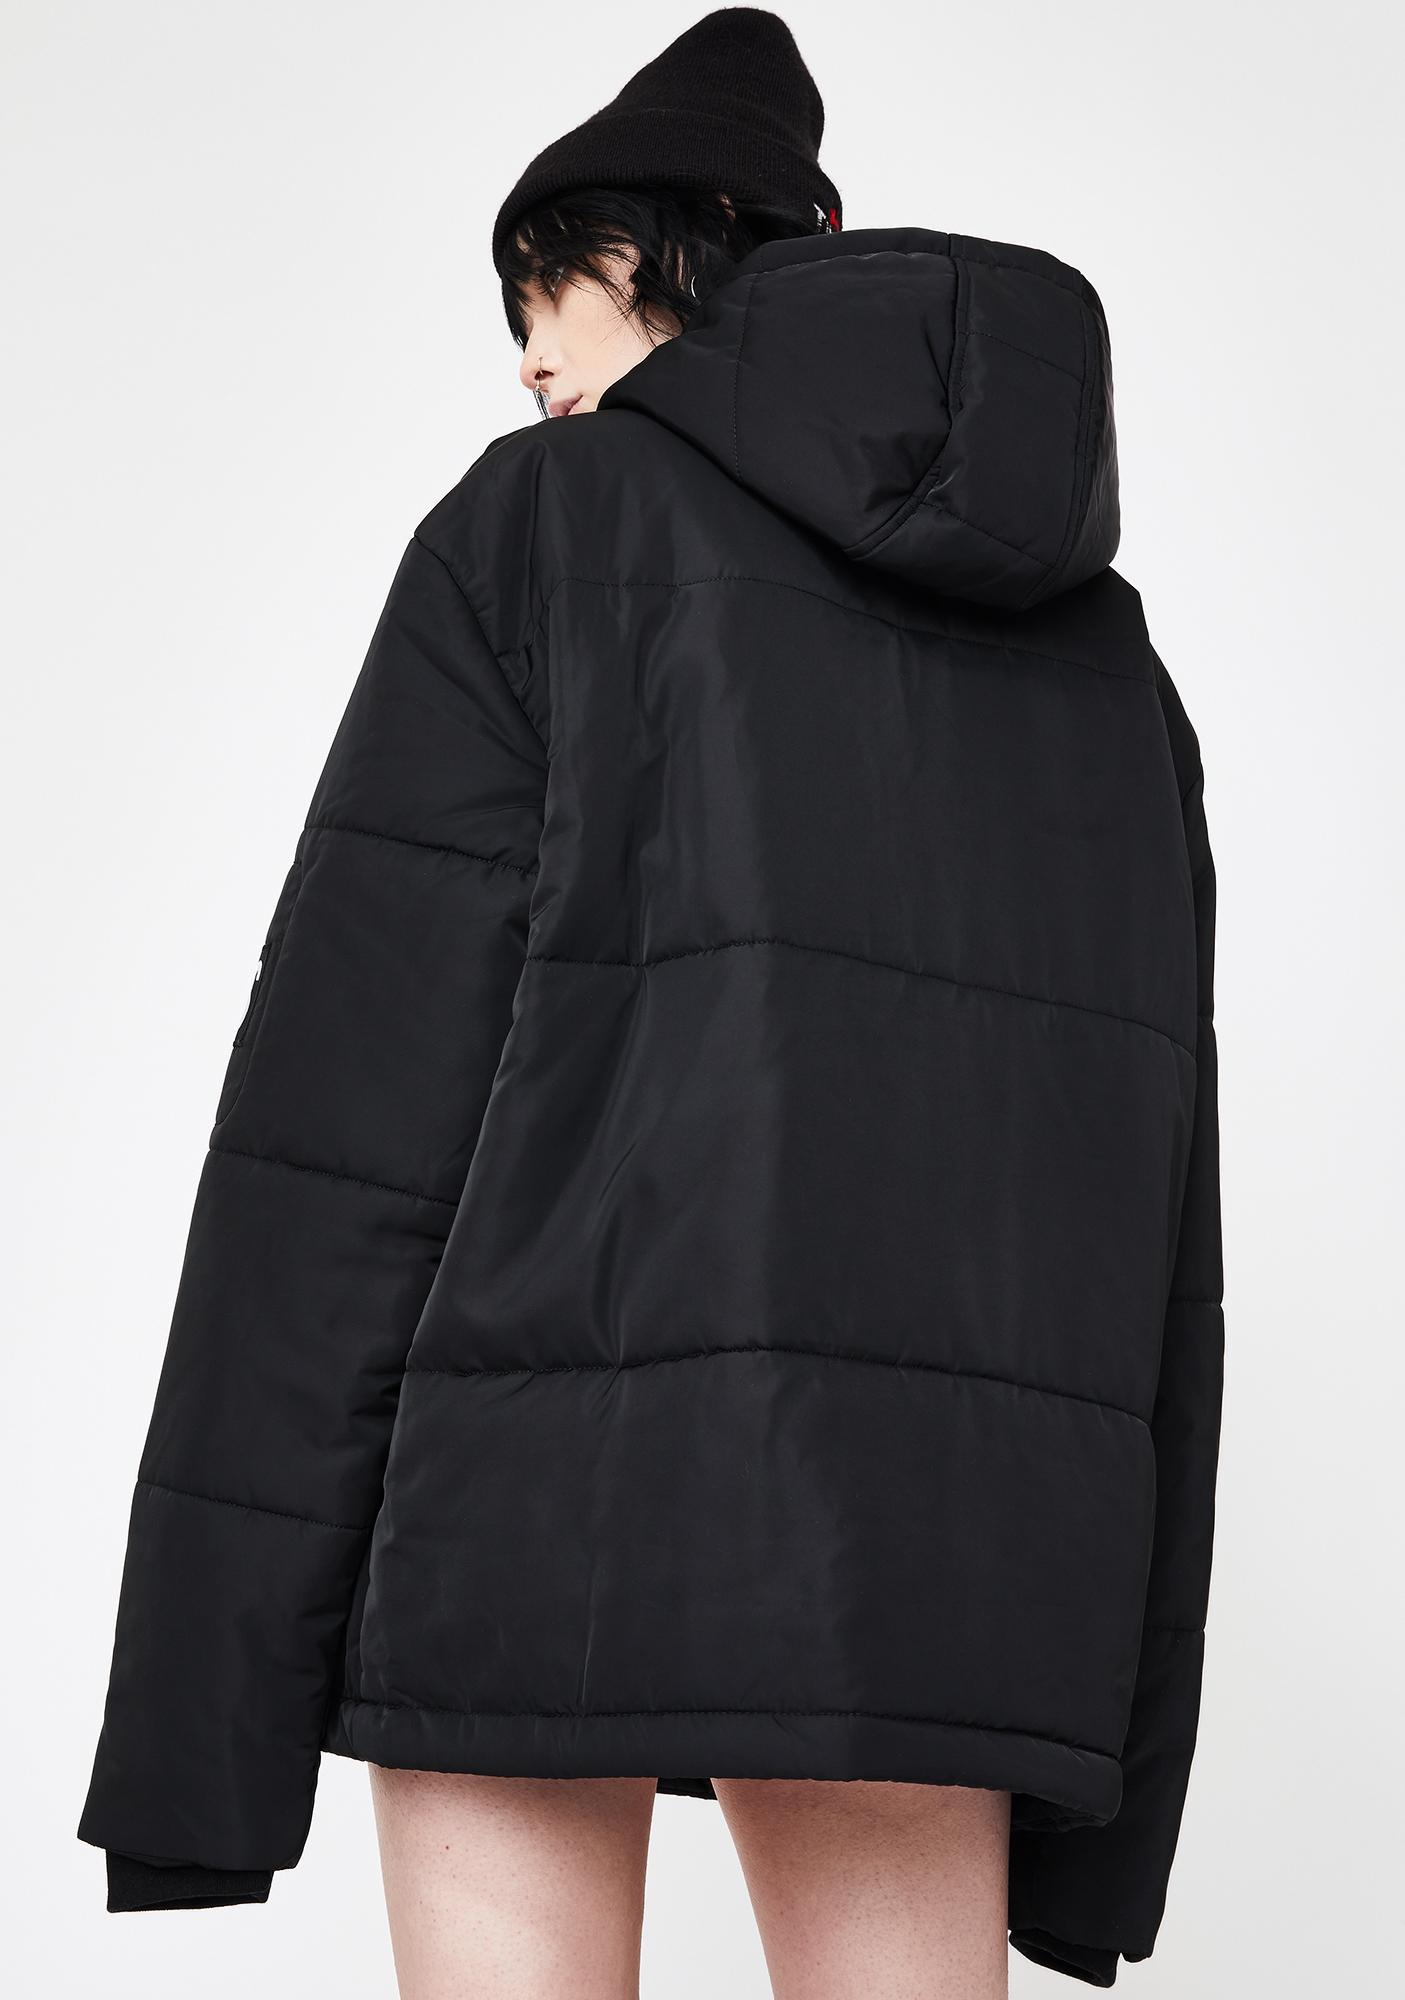 Disturbia Haute Patched Puffer Jacket